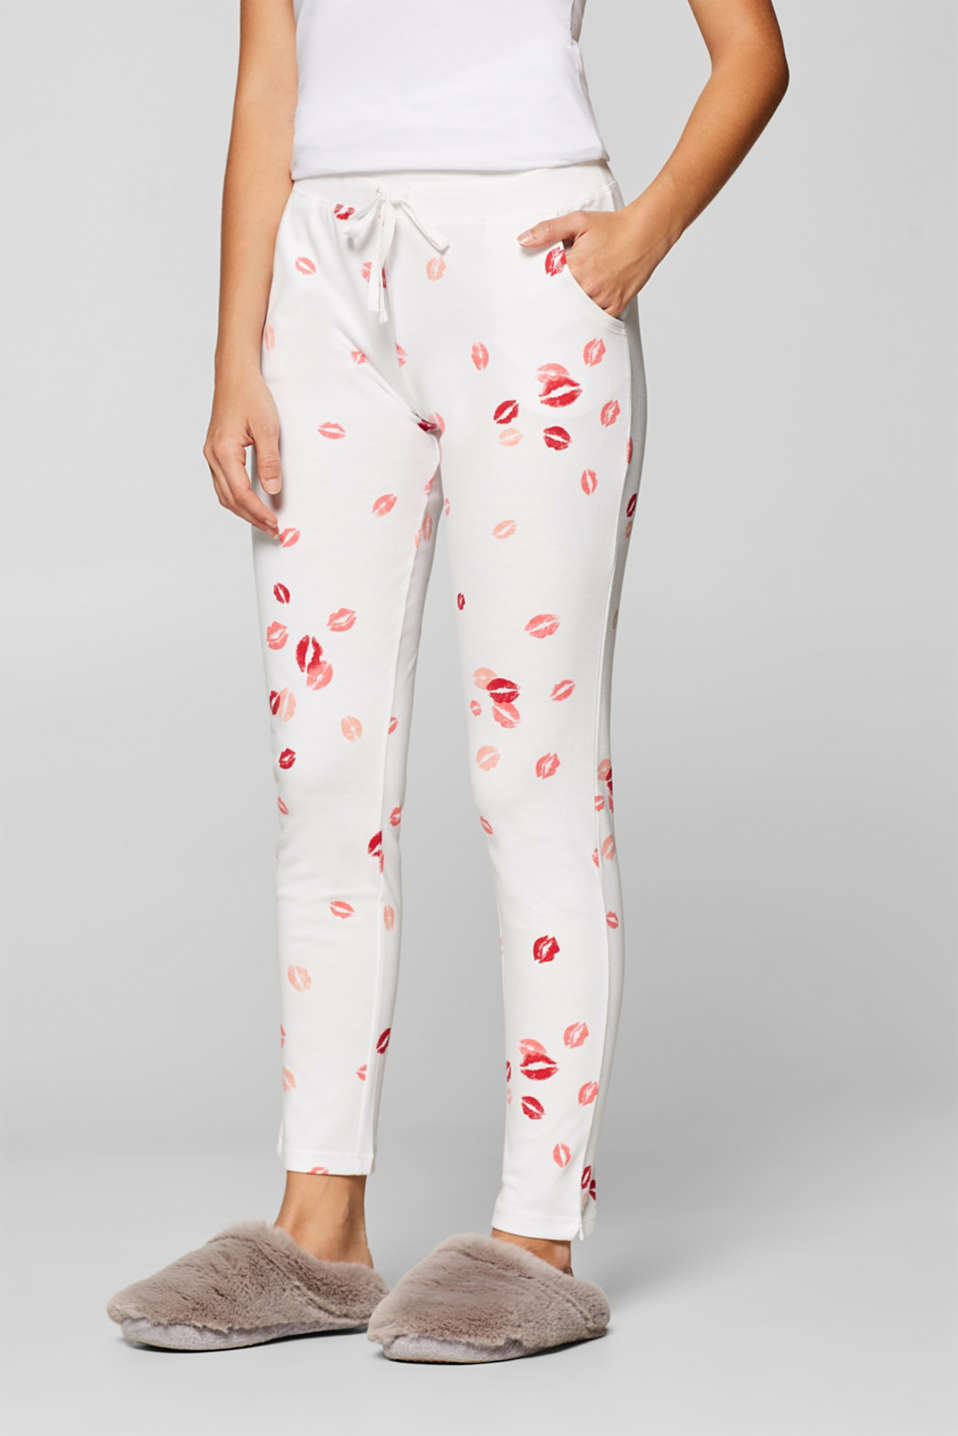 Esprit - Jersey bottoms with a pout print